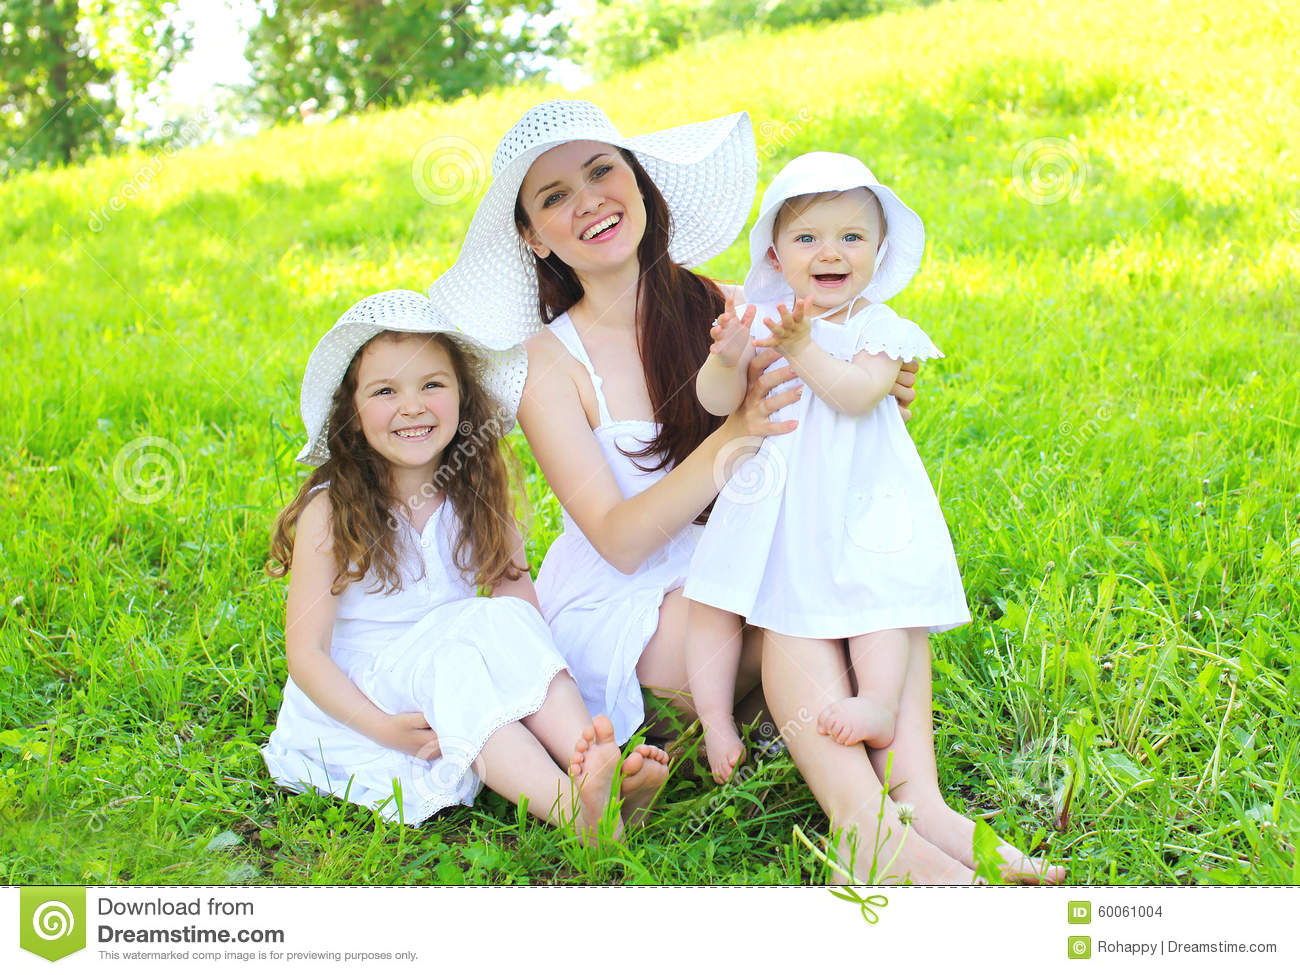 What the English speaking world has done for us. happy smiling mother two children wearing white dress straw hats grass summer 60061004  us canada society culture politics government politics news history europe